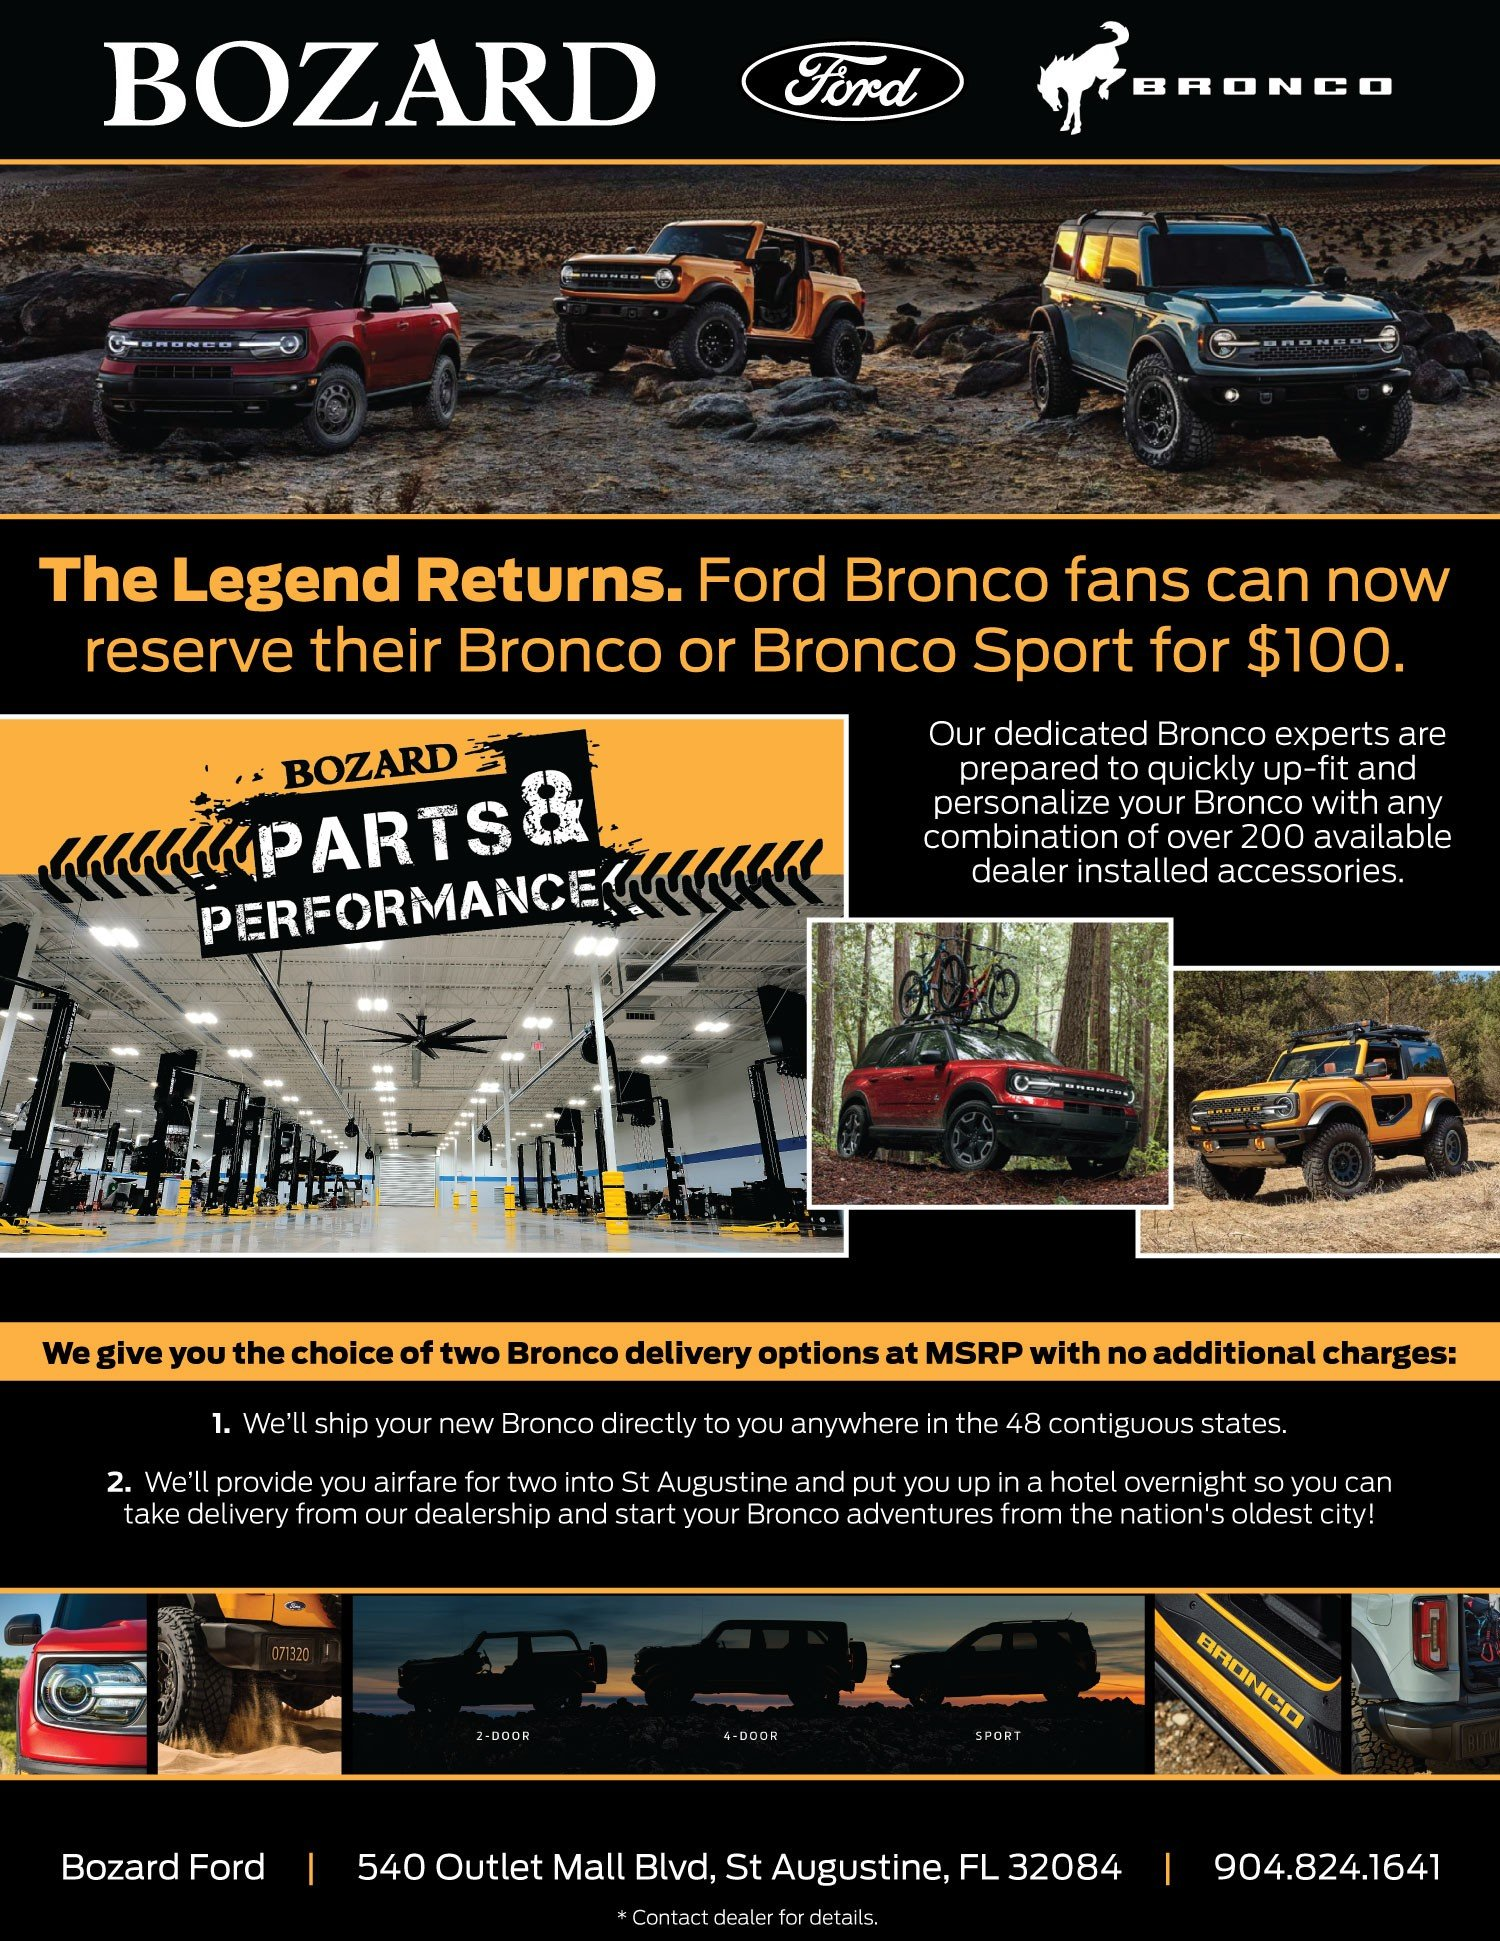 2021 Ford Bronco Reserve Now, We Deliver�